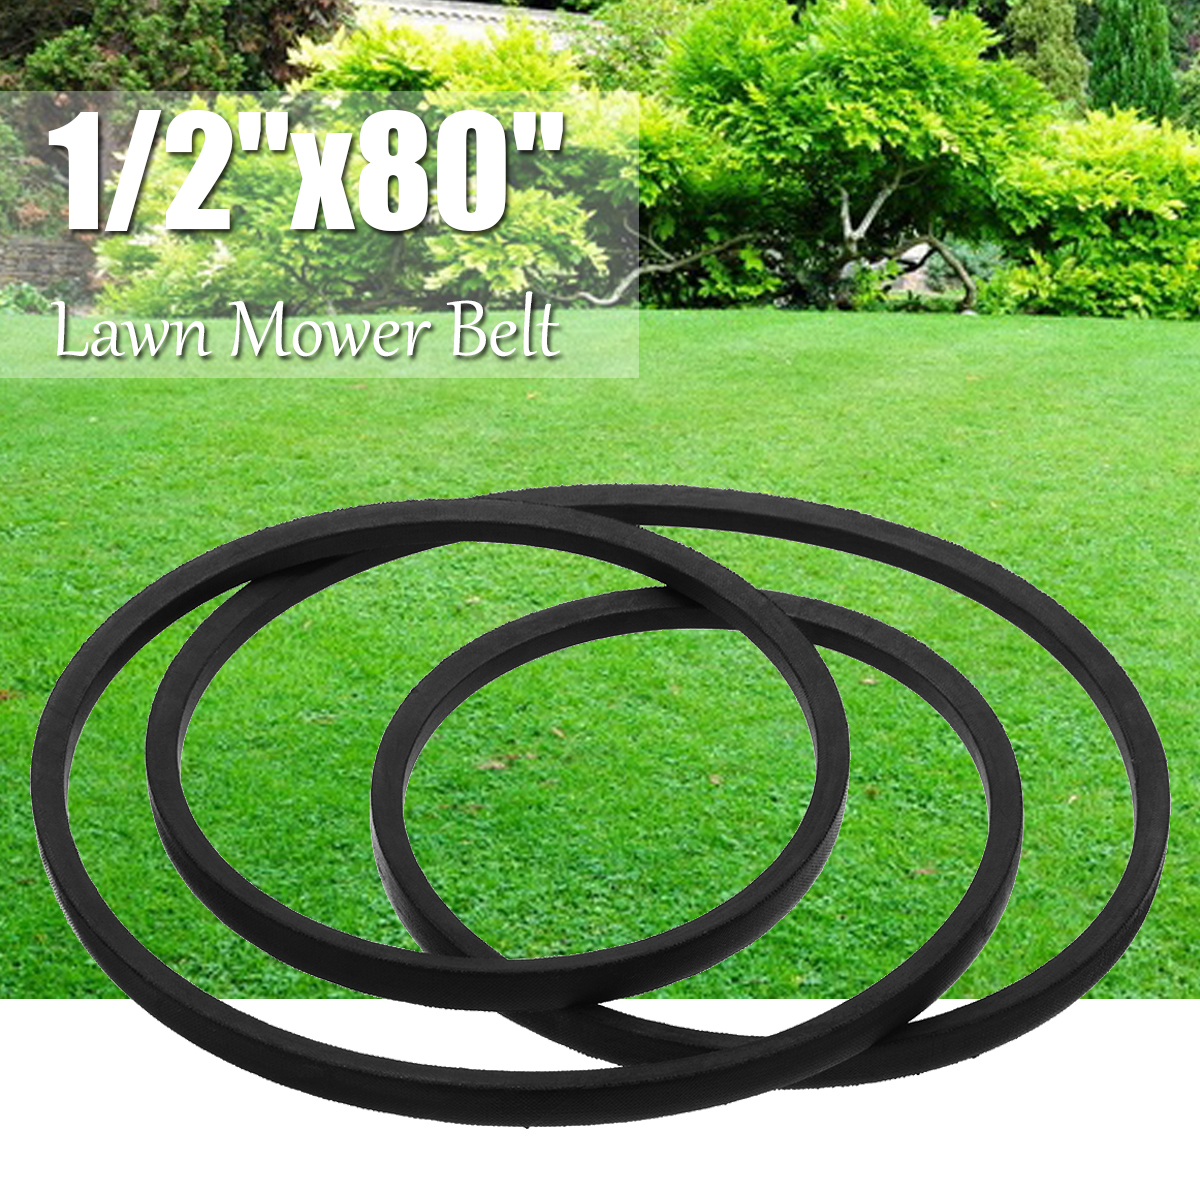 купить A78 Yard Machine Lawn Mower Tractor Drive V-Belt for Lawn Mover Parts 13mm 1/2